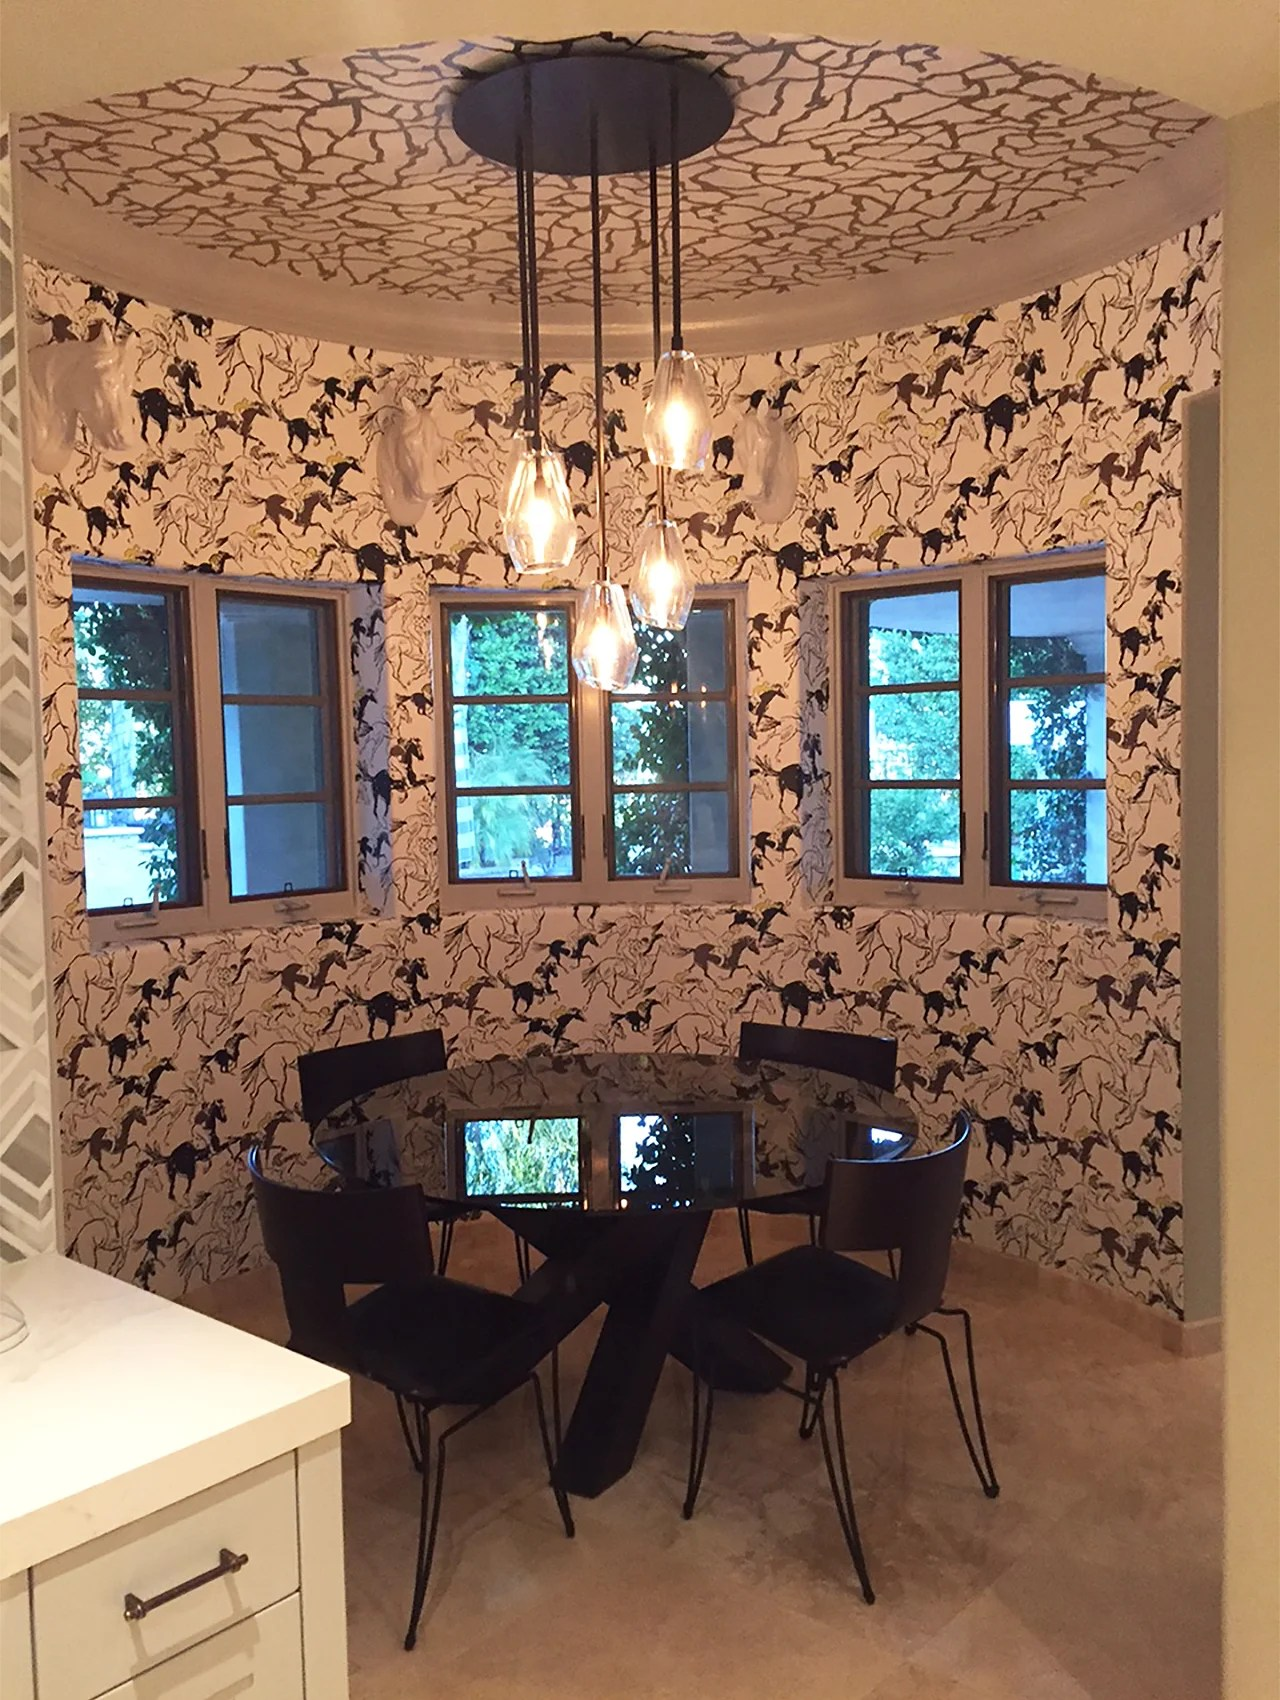 Cute House Wallpaper Kaley Cuoco S Redecorated Her Home With 3 450 Worth Of